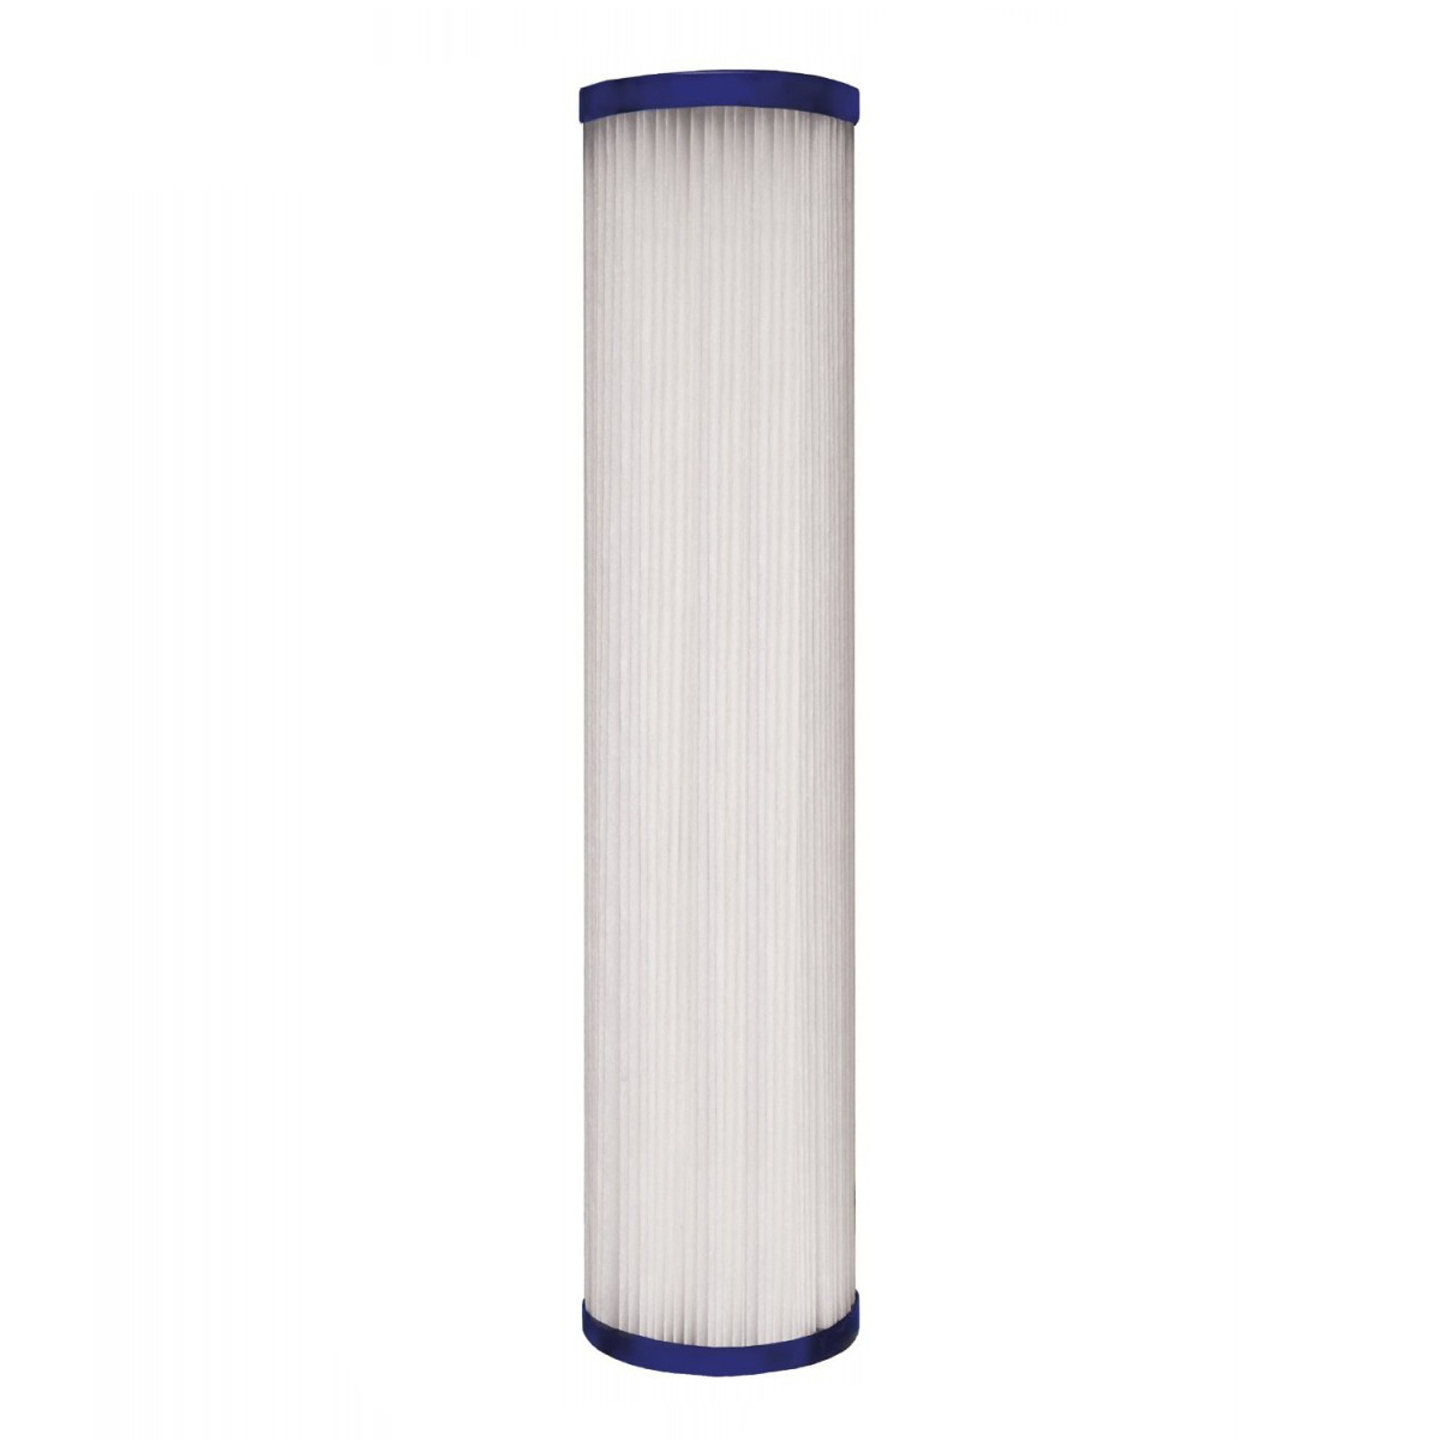 Image of 10-inch x 2.5-inch Comparable Pleated Sediment Water Filter by Tier1 (20 Micron)